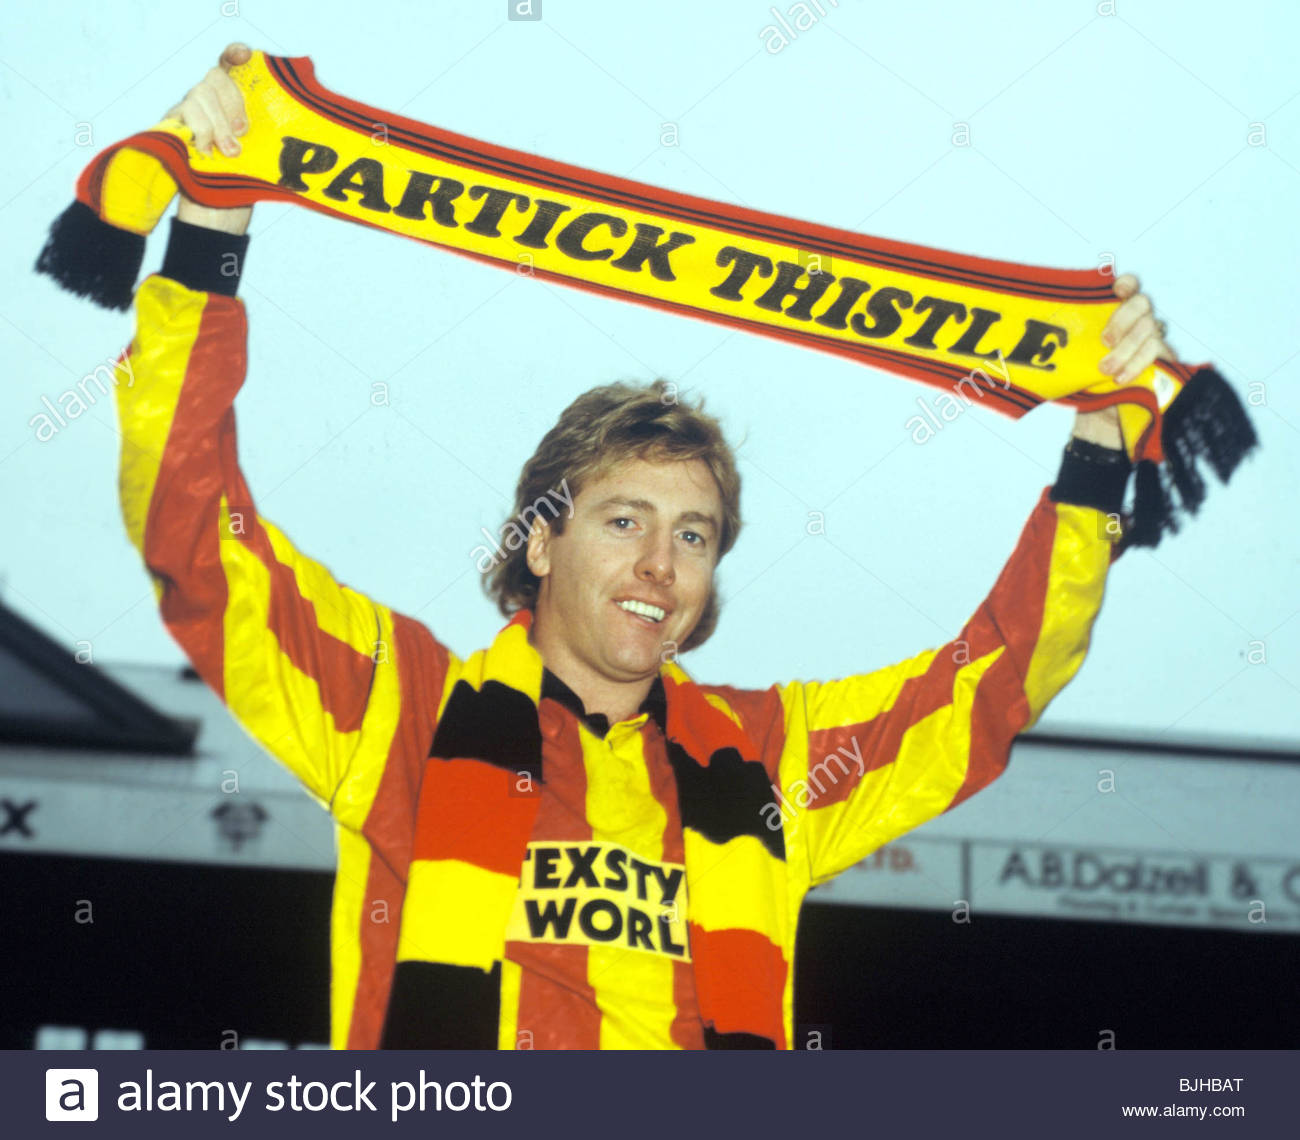 SEASON 1992/1993 PARTICK THISTLE Frank McAvennie signs for Partick Thistle. - Stock Image